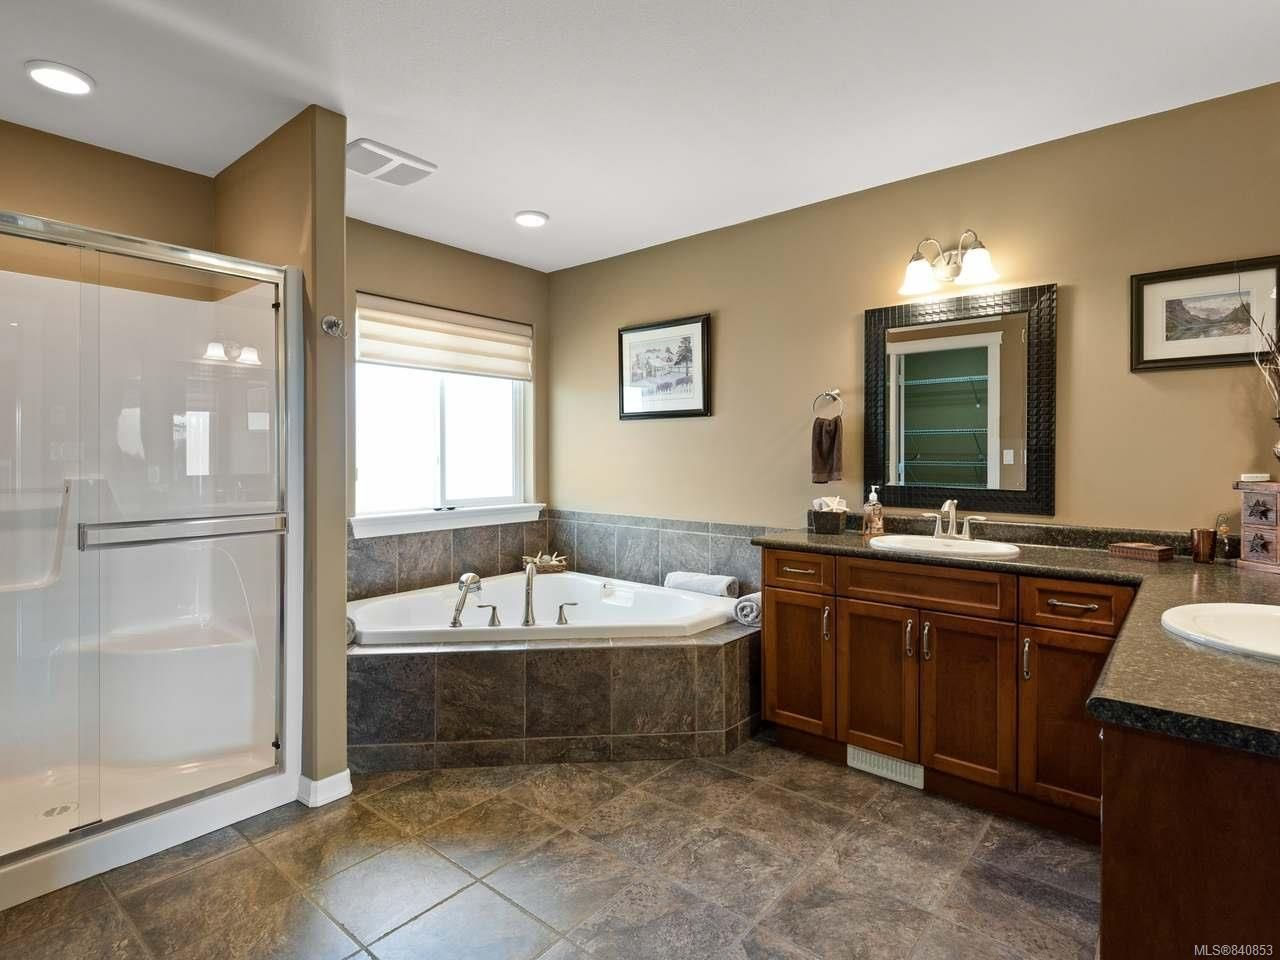 Photo 26: Photos: 206 Marie Pl in CAMPBELL RIVER: CR Willow Point House for sale (Campbell River)  : MLS®# 840853